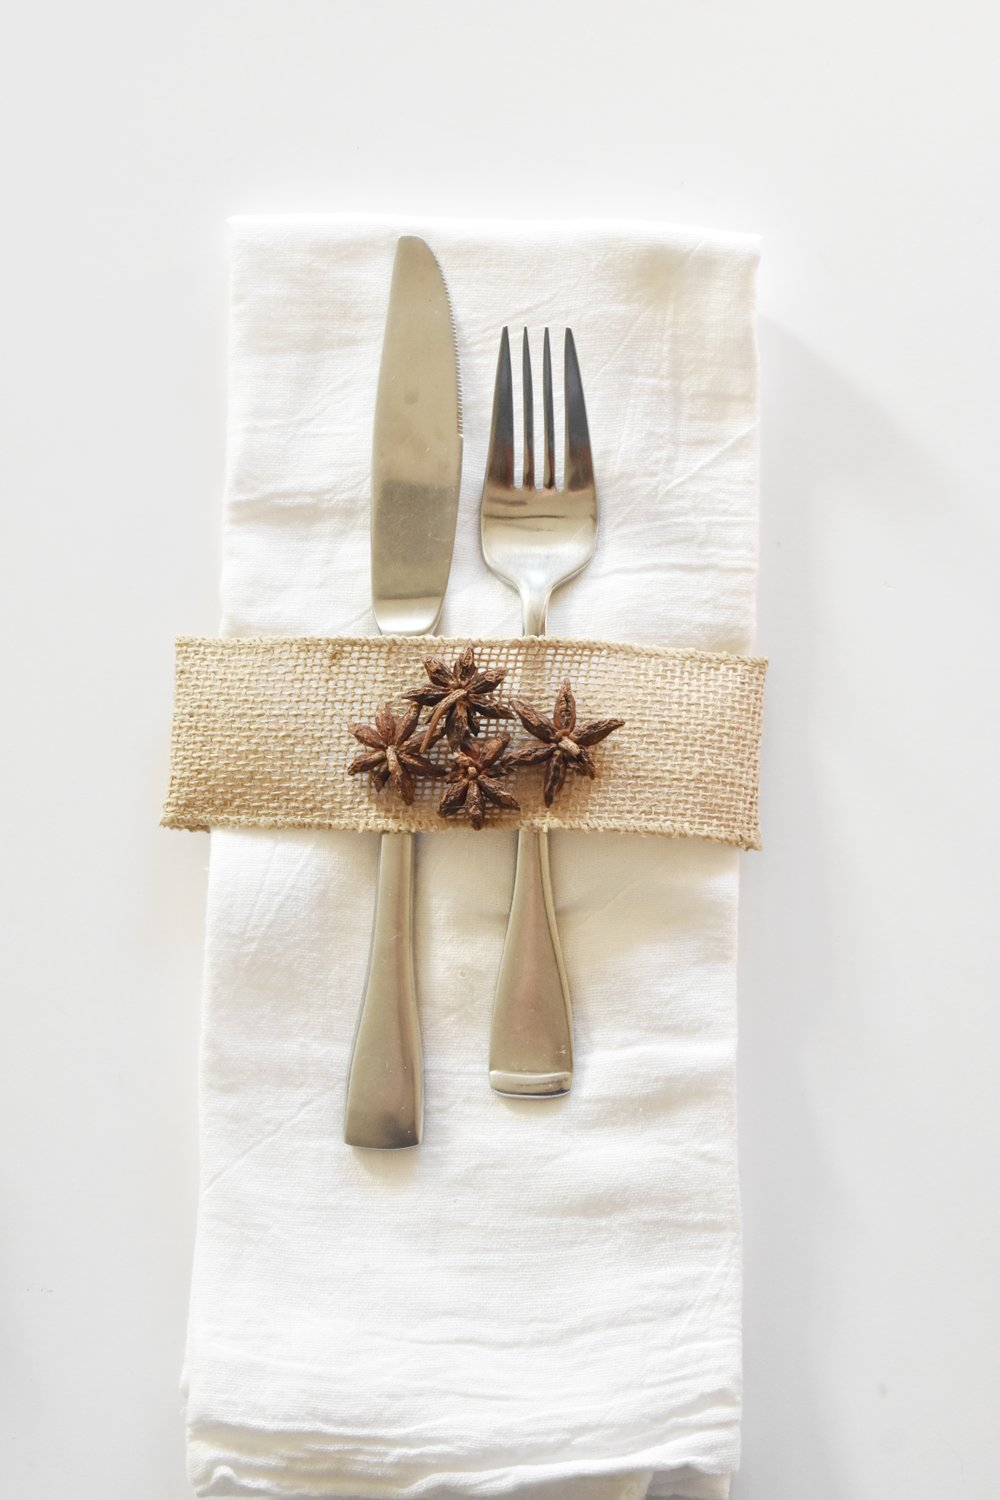 Easy DIY Holiday Tablescape Napkin Holder Idea. Burlap Ribbon with Anise Stars. Perfect for that Rustic Woodsy Natural Table Theme.